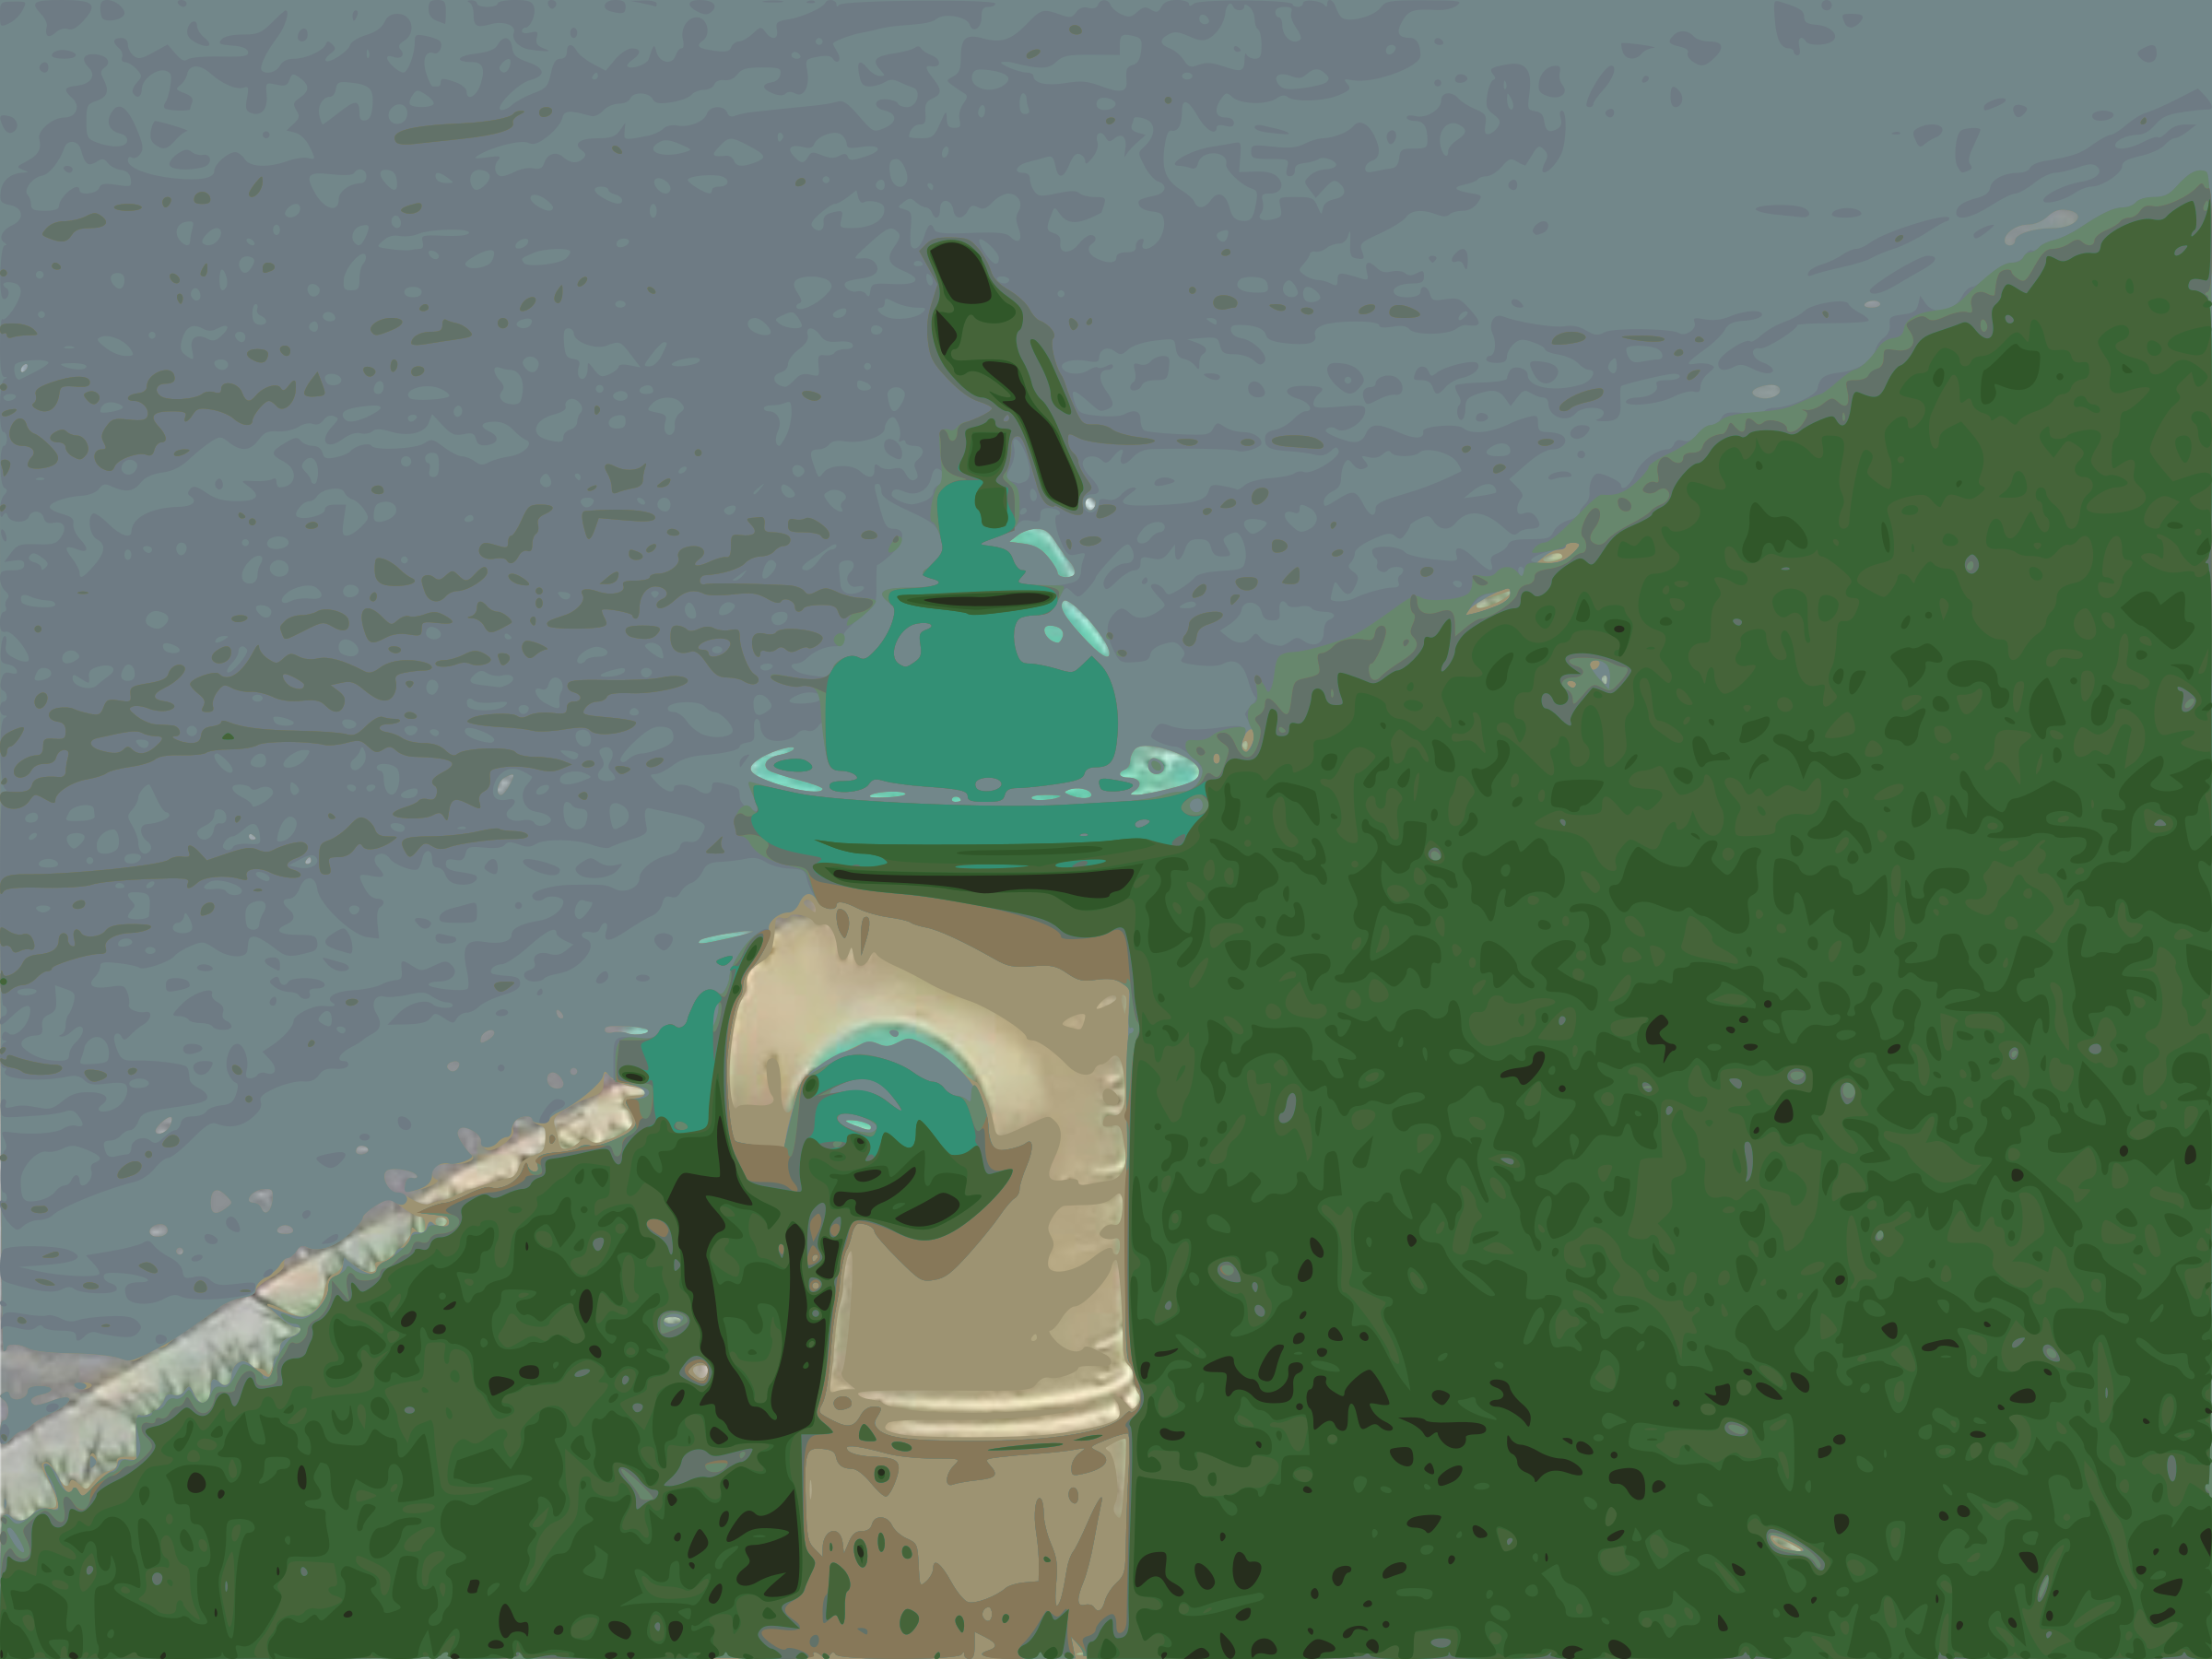 Bird on Fire Hydrant by EdR